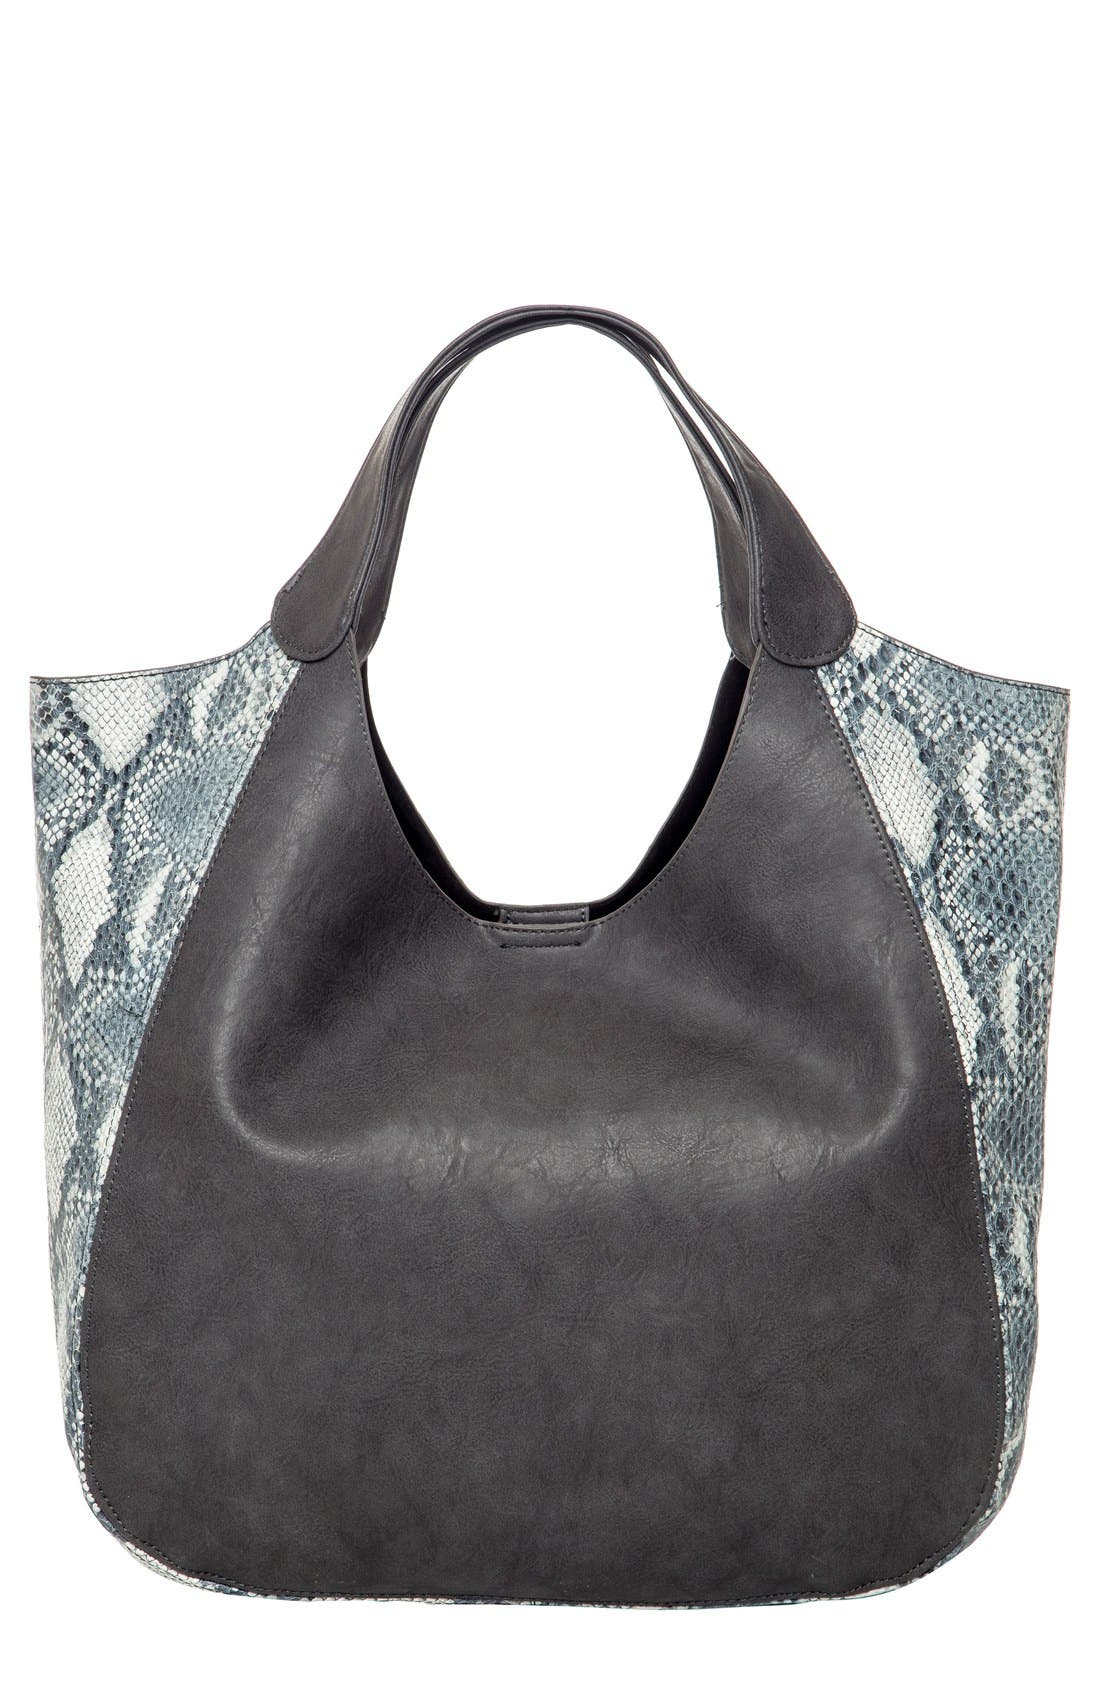 Masterpiece Vegan Leather Tote,                         Main,                         color, Steel